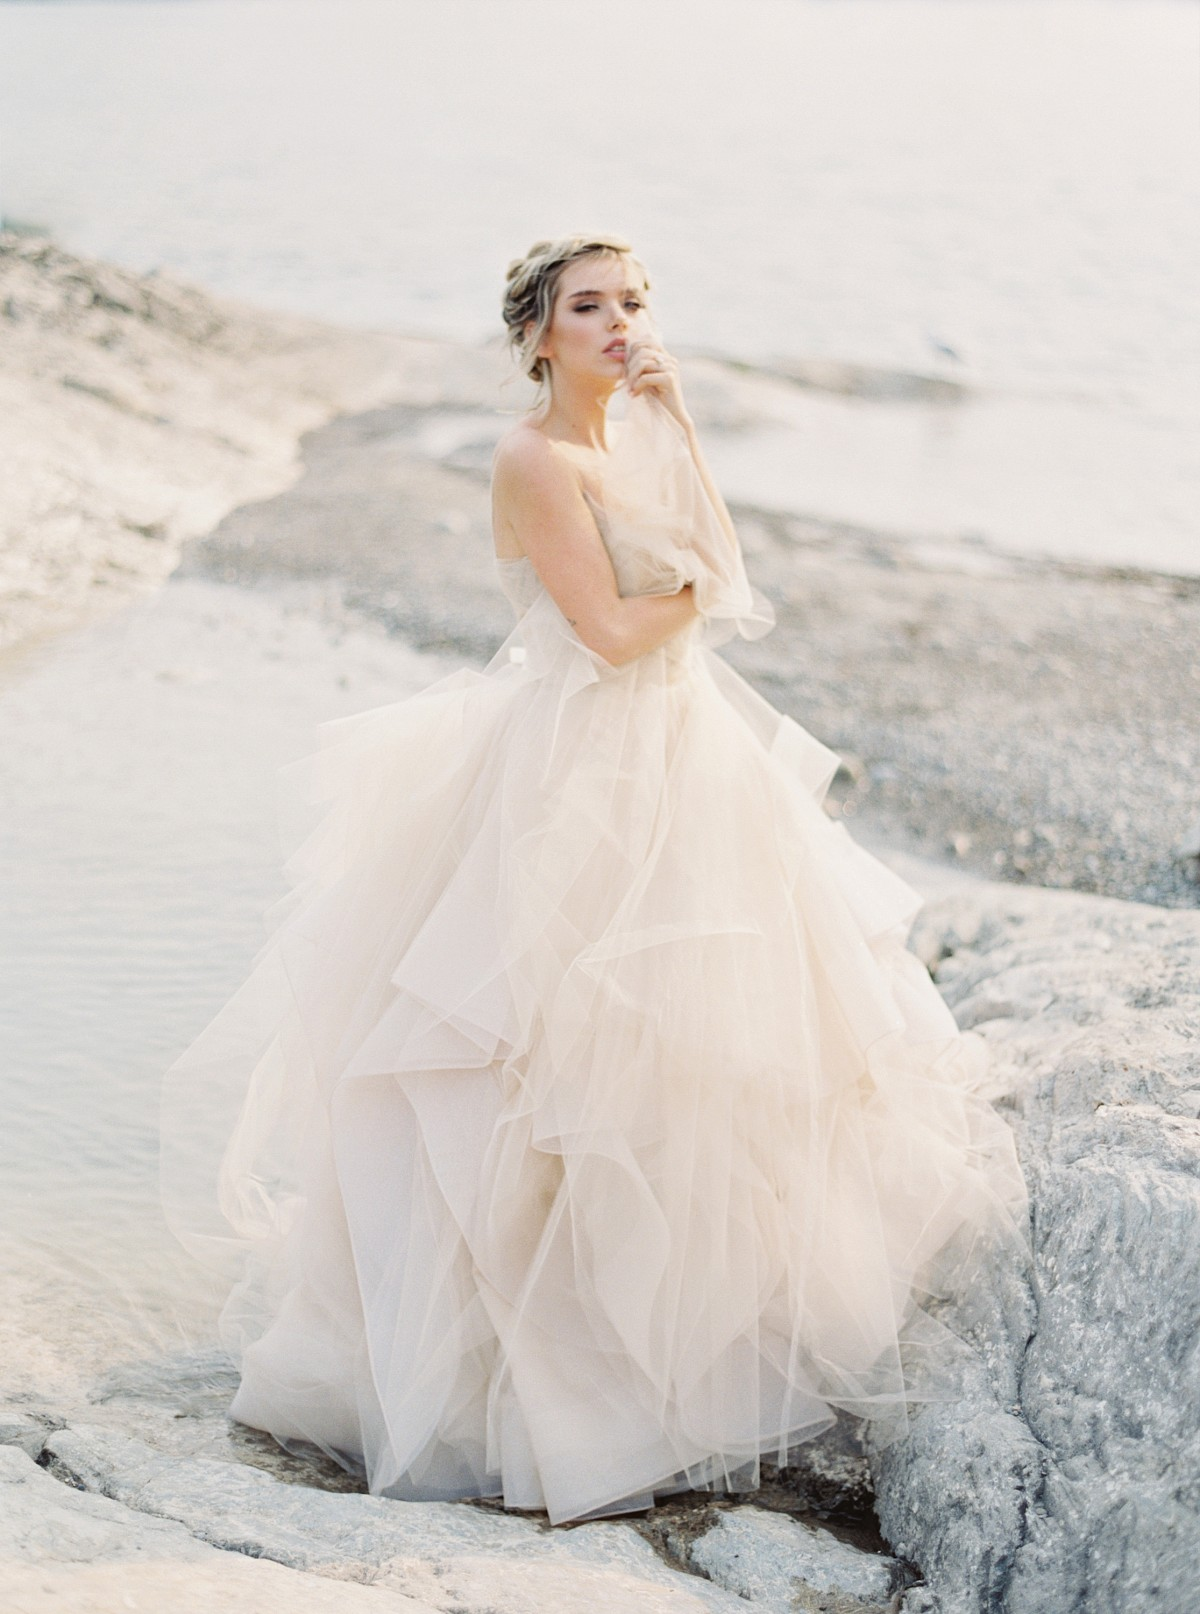 Blush Wedding Dress in the Mountains